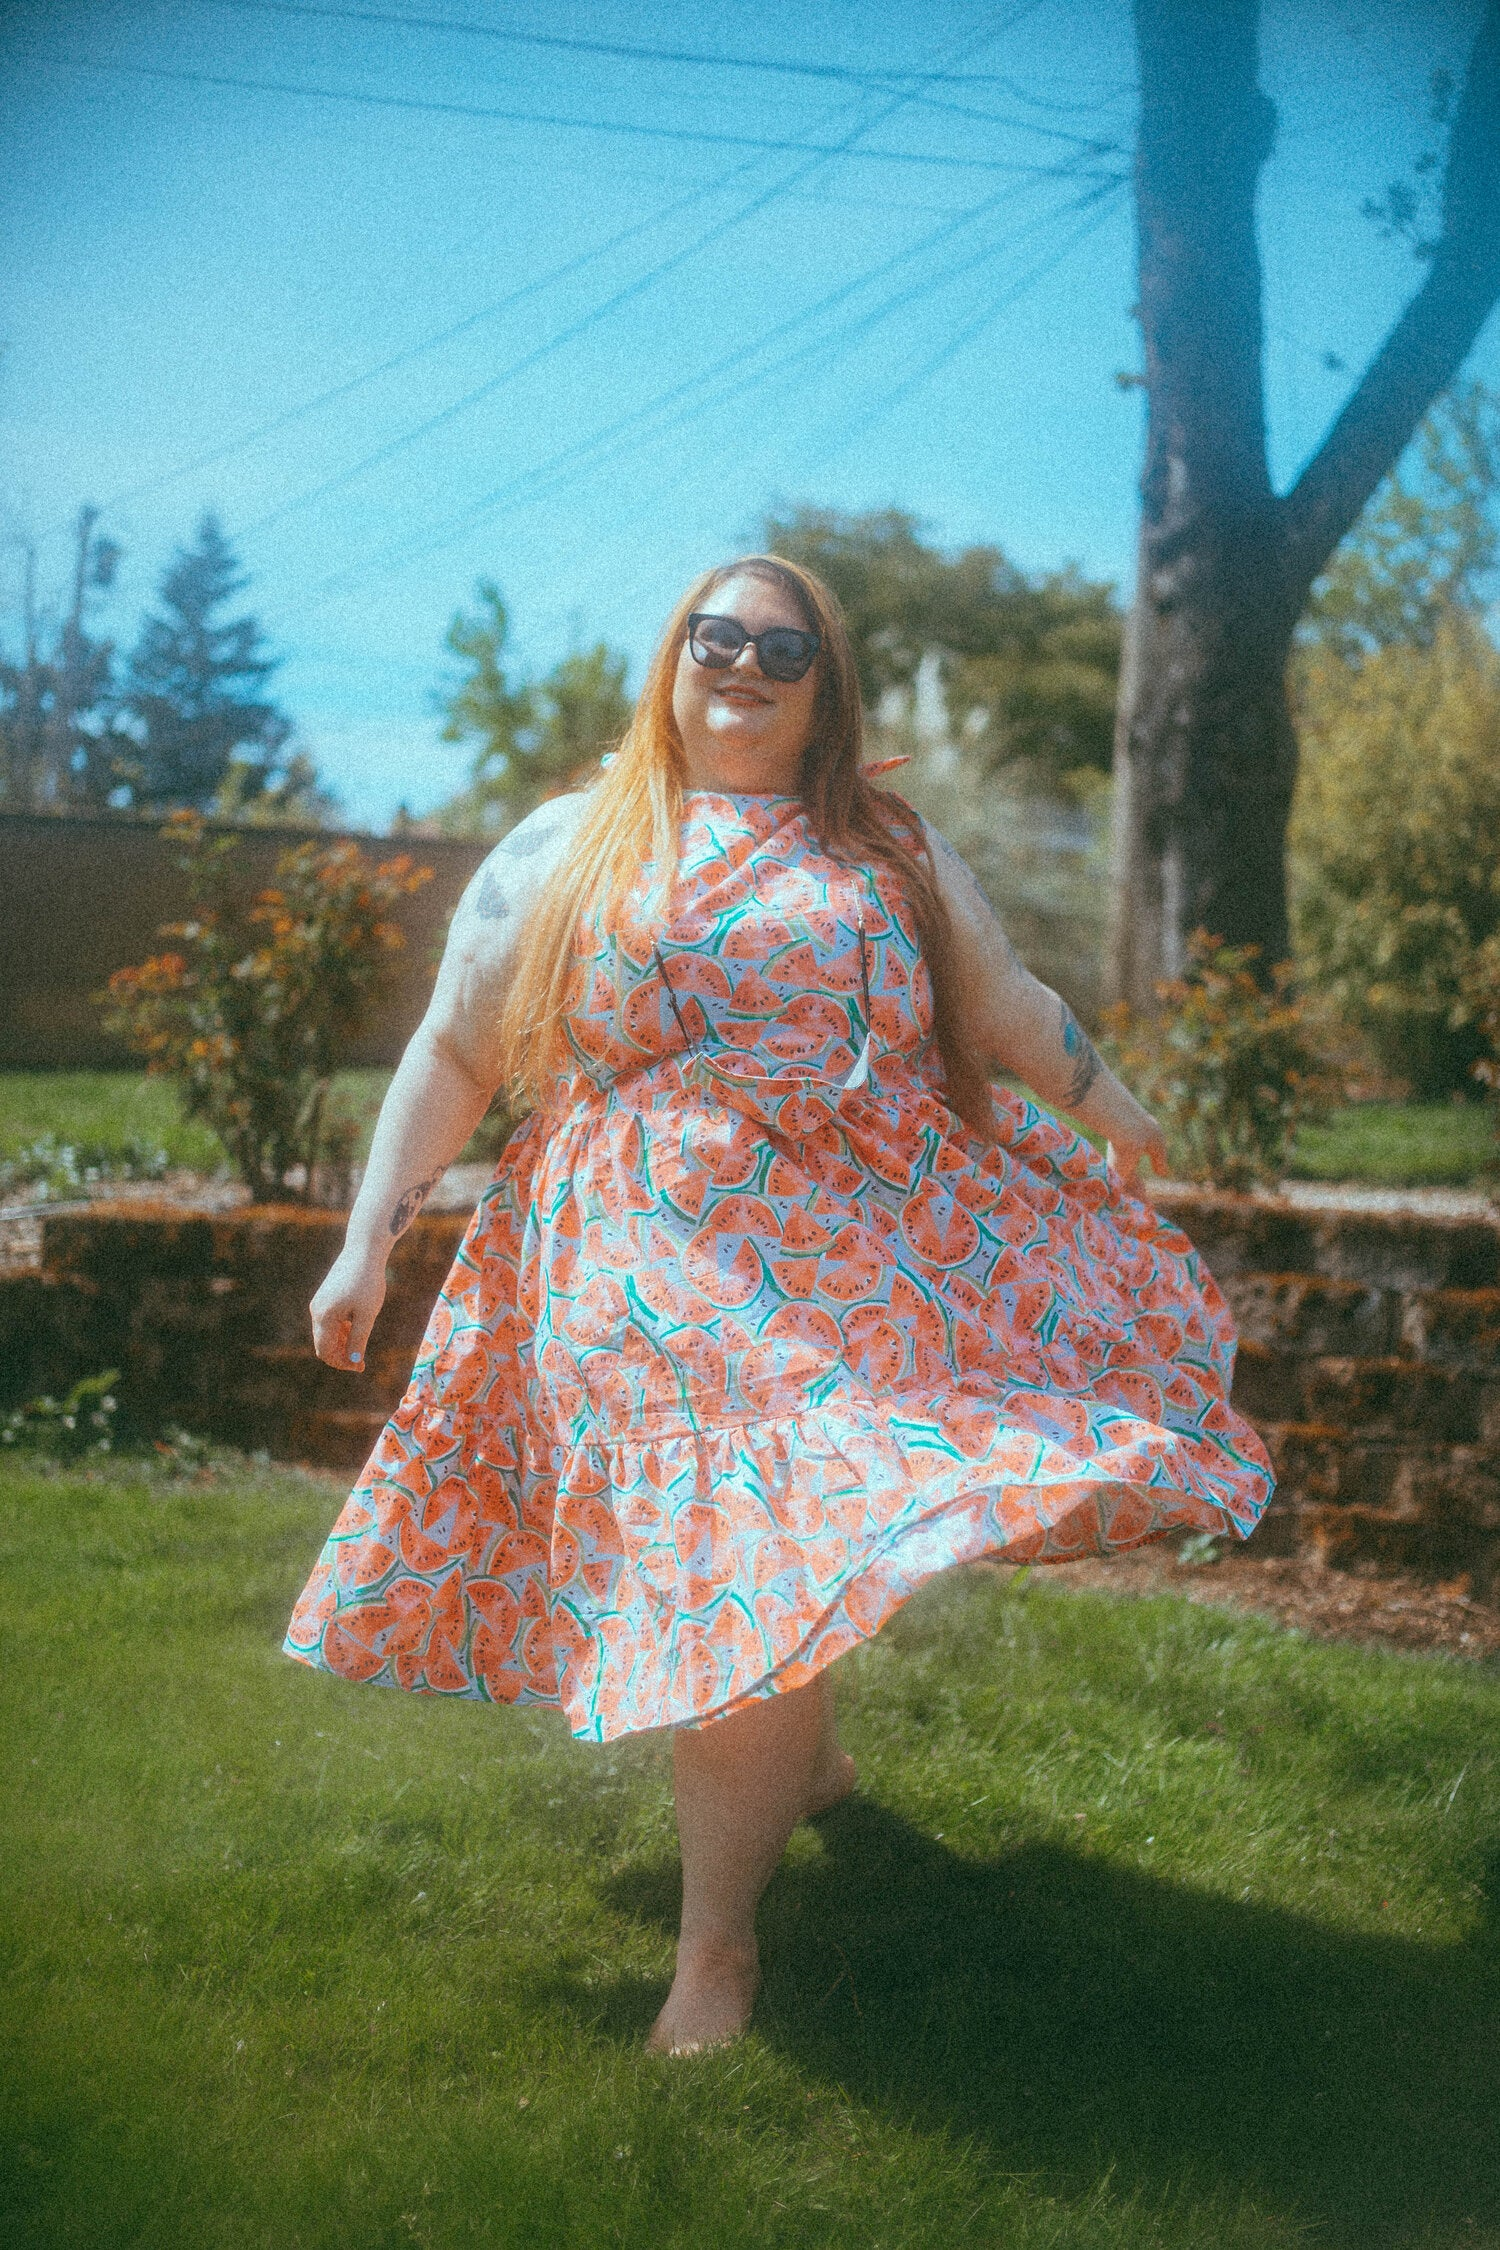 Plus-size model waring a light blue midi dress with watermelons on it